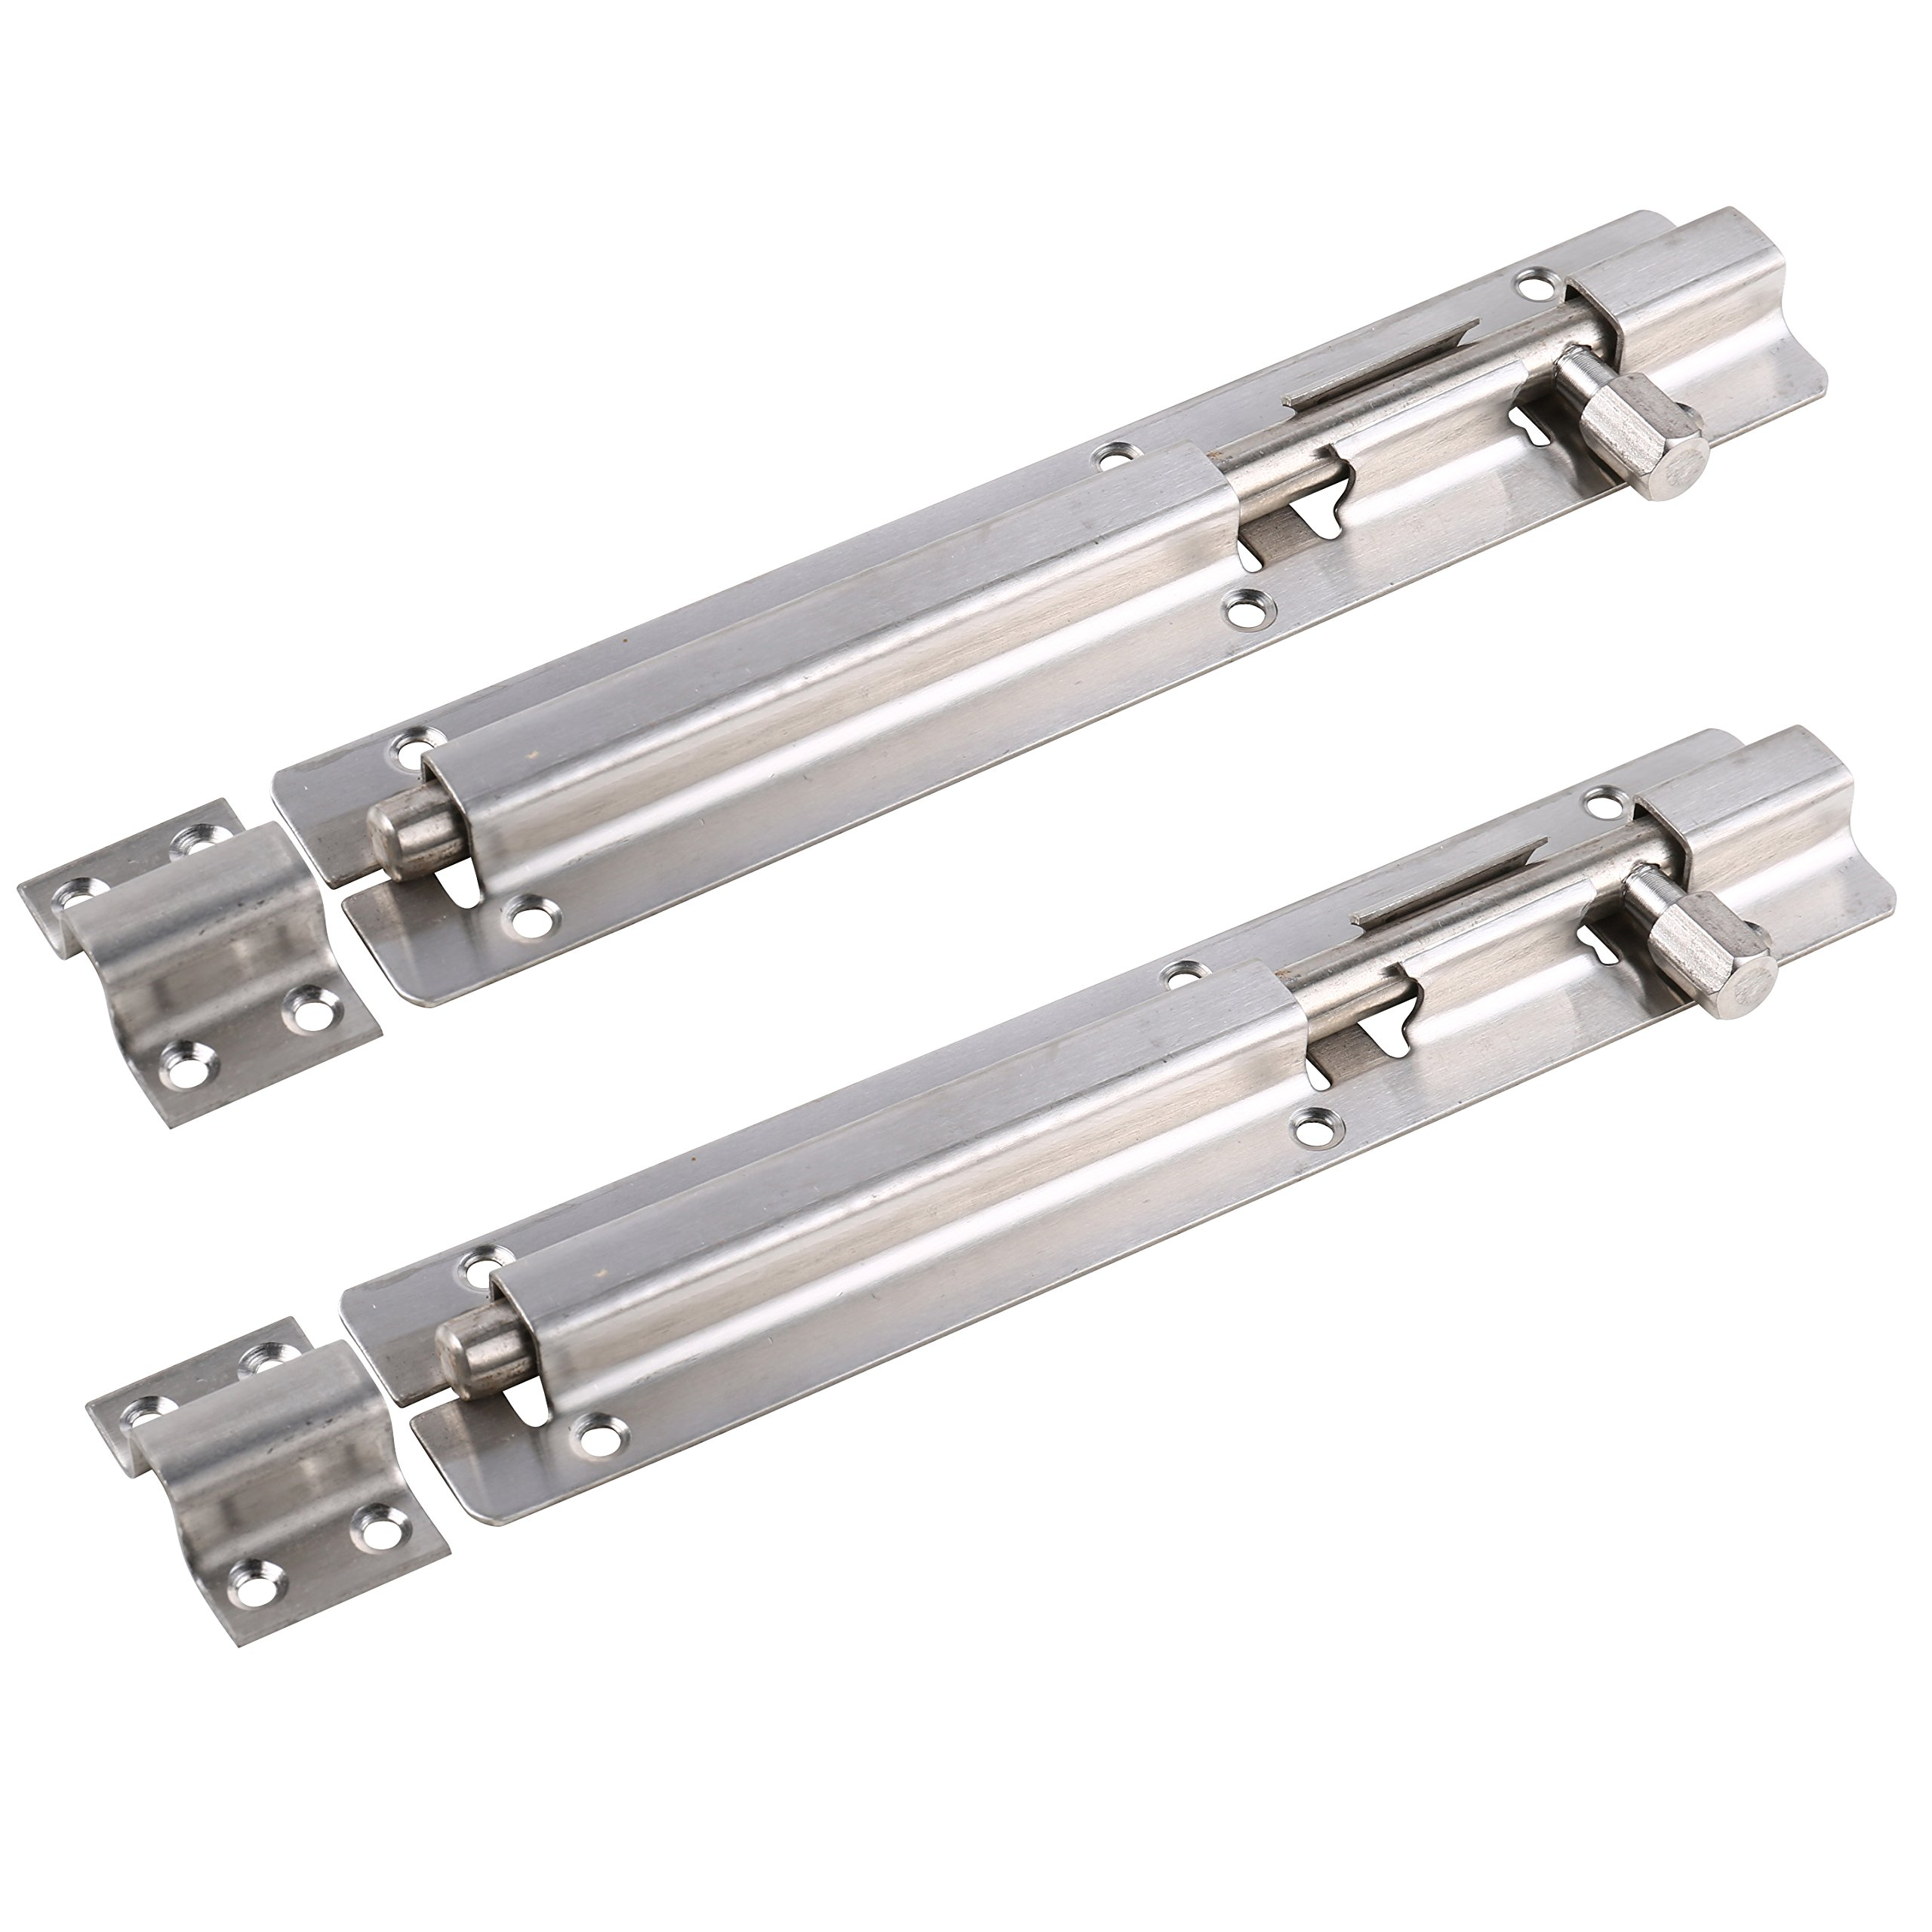 UHPPOTE Security Guard Stainless Steel Anti-thief Revealed Door Slide Latch Bolt Barrel (8 inch/Pack of2)